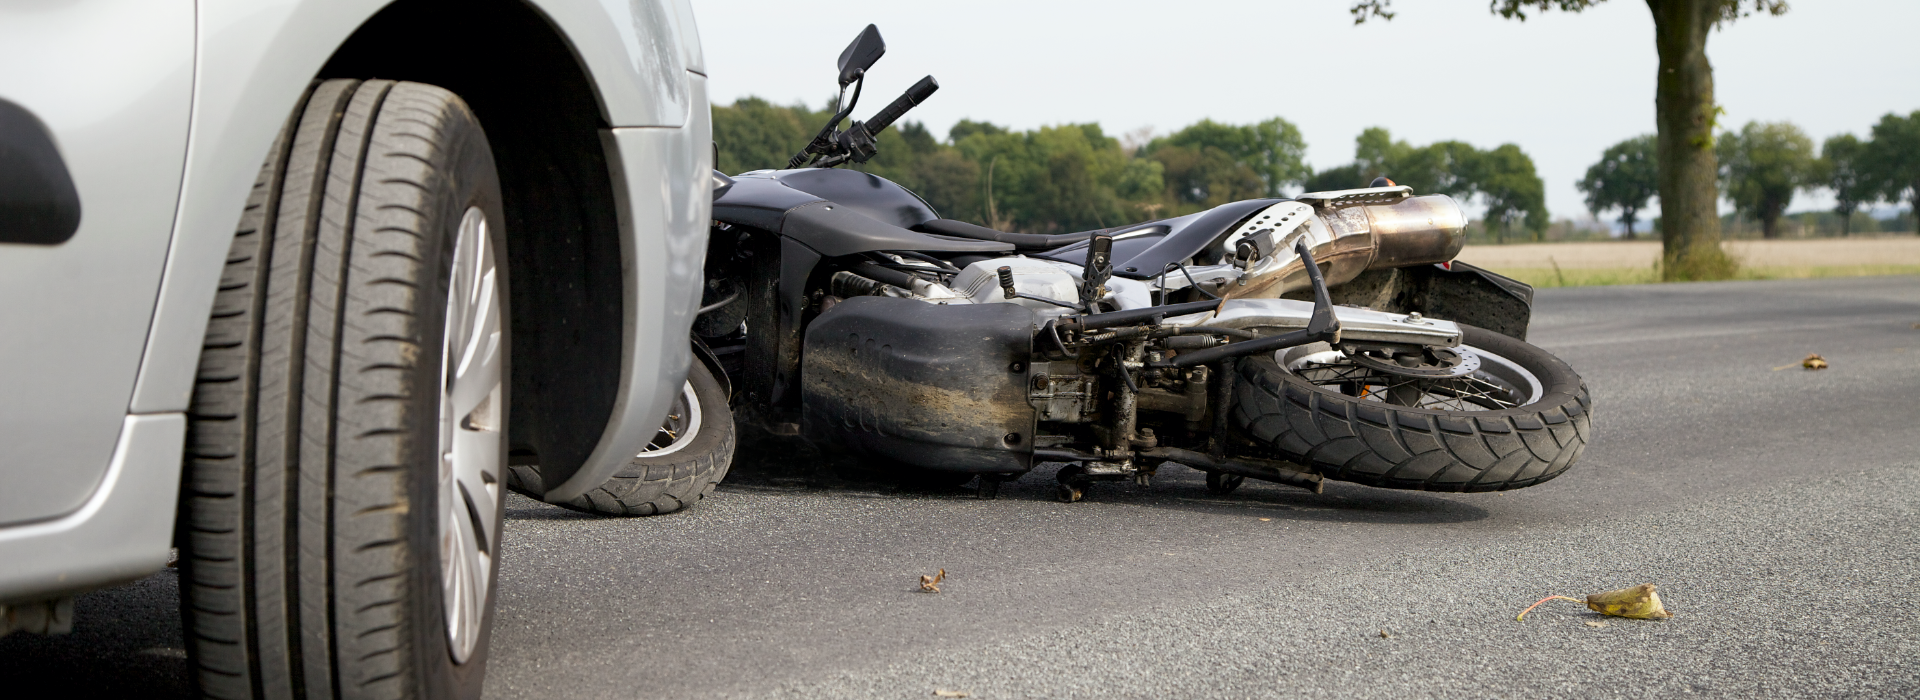 Motorcycle likes on ground after car crashes into it.